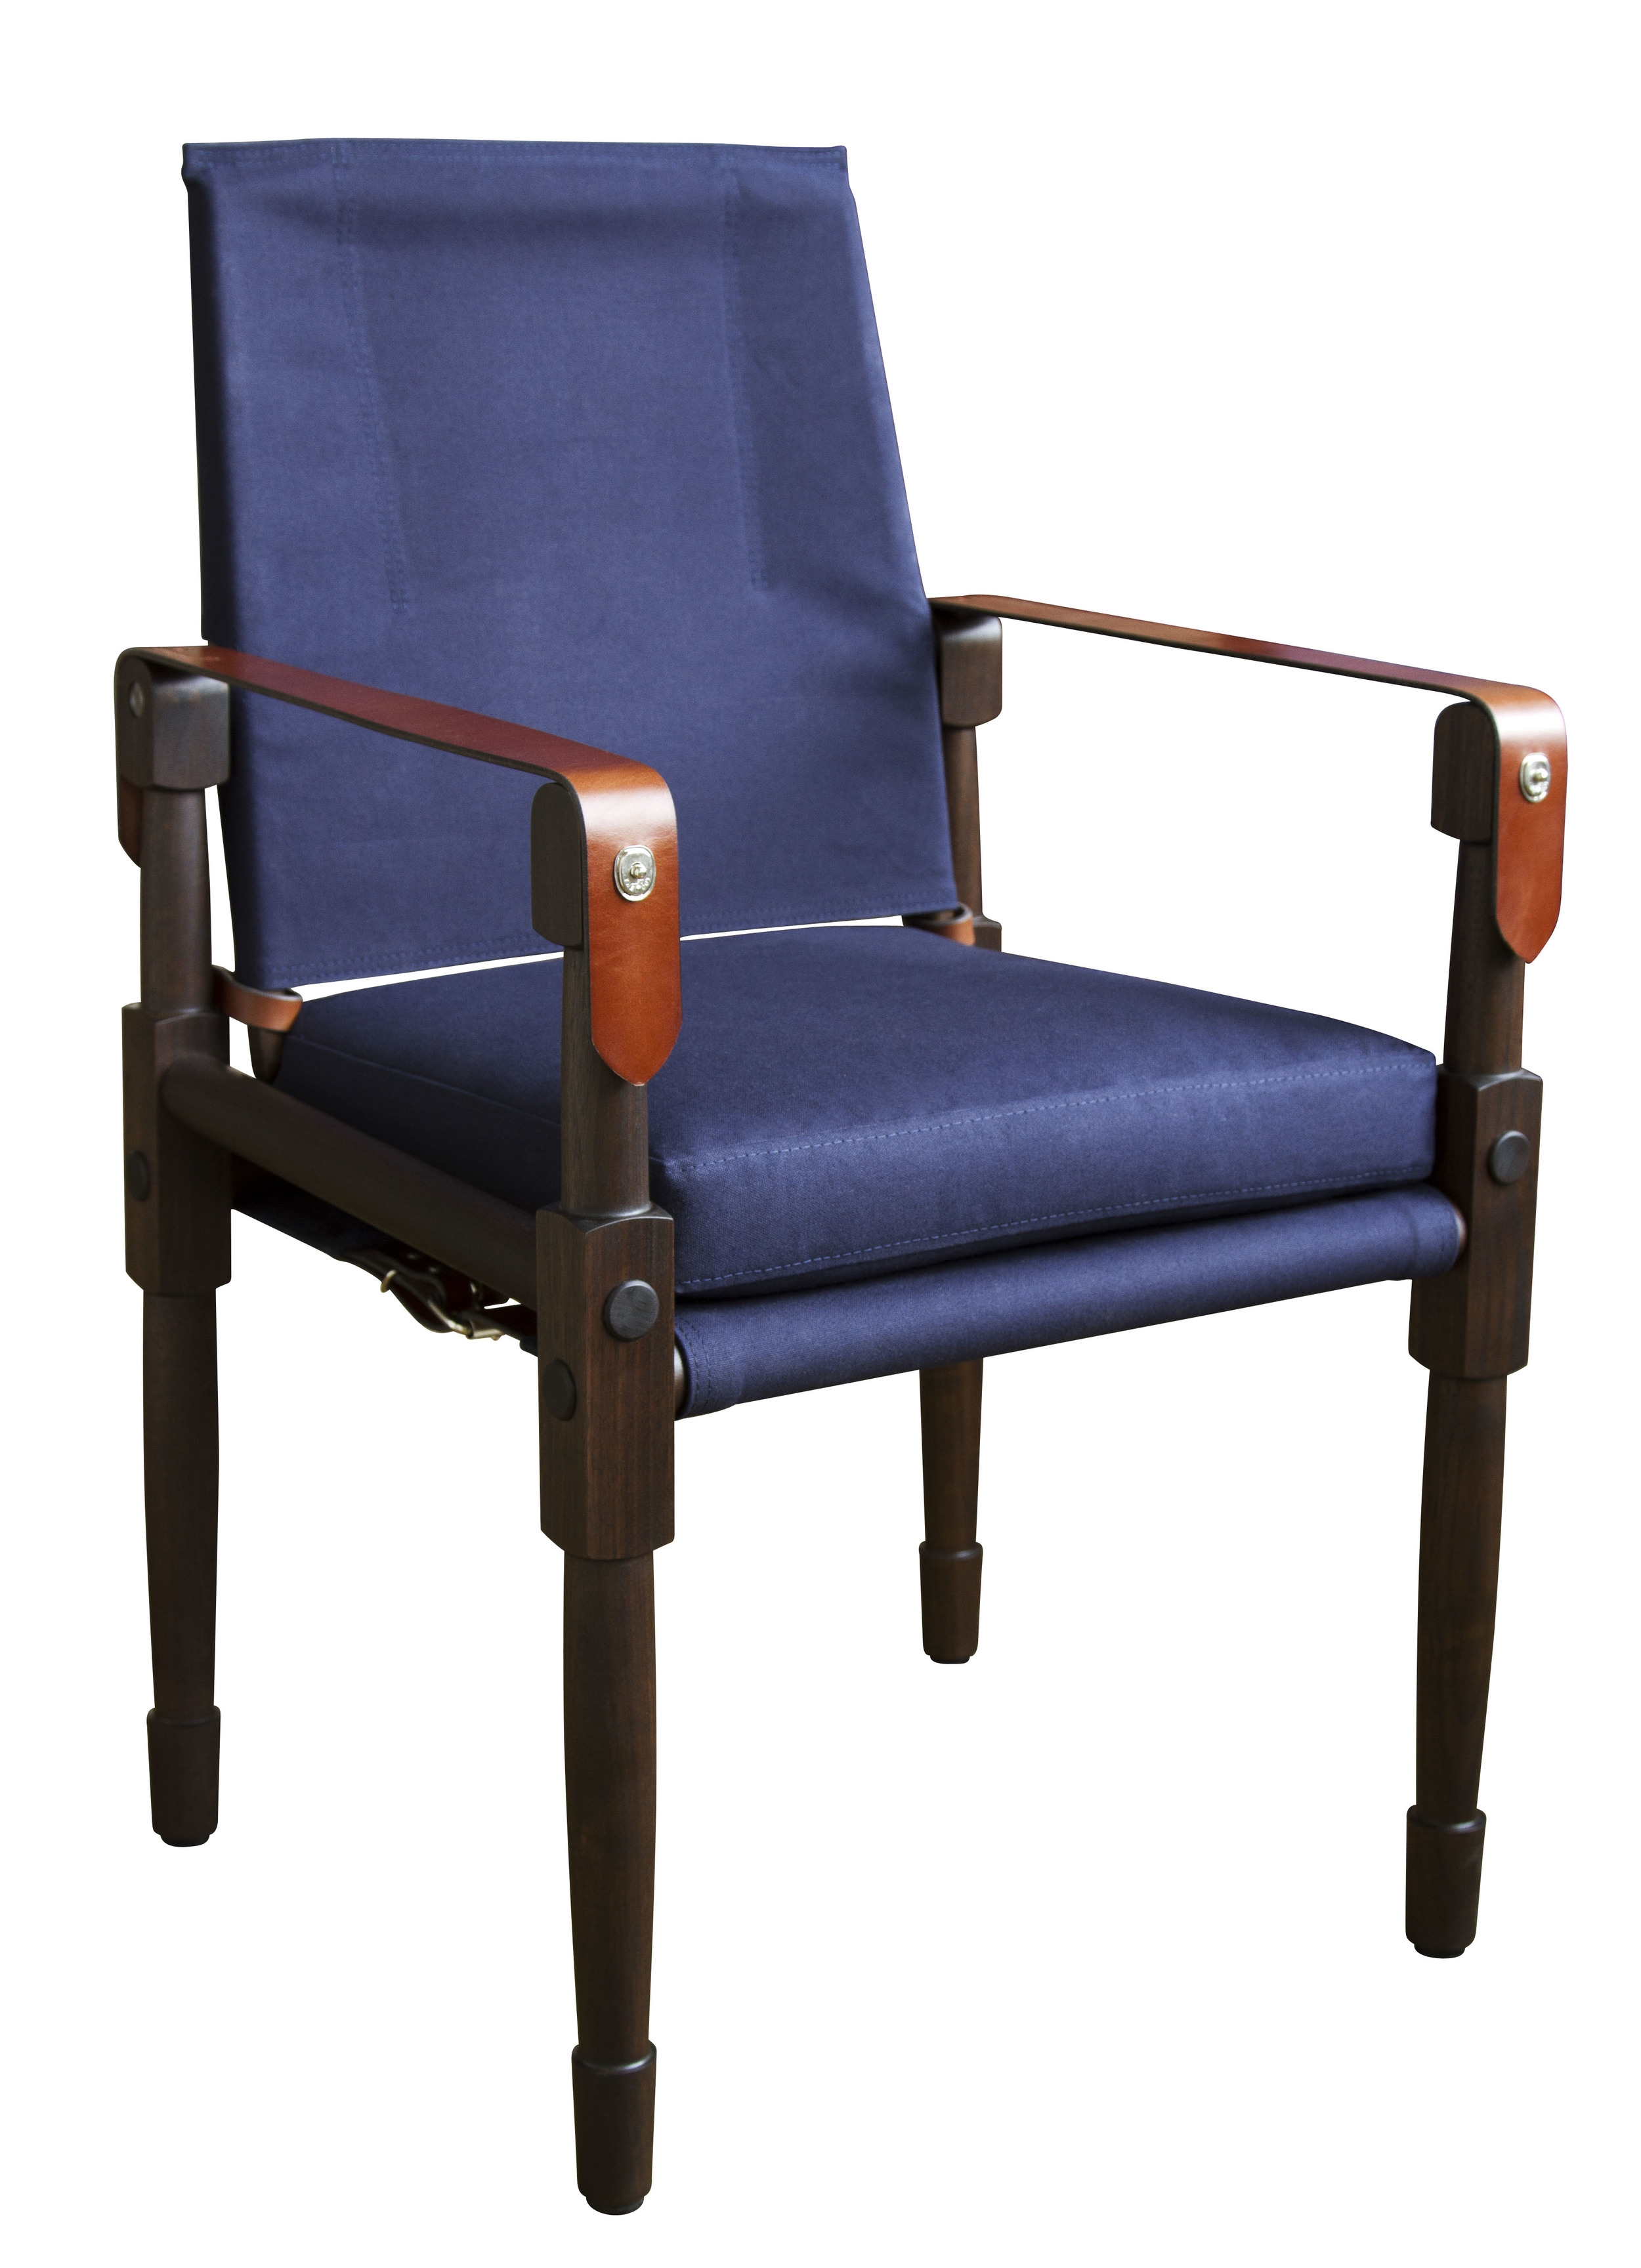 Marrakesh stained walnut with navy canvas and saddle English bridle leather strapping  25